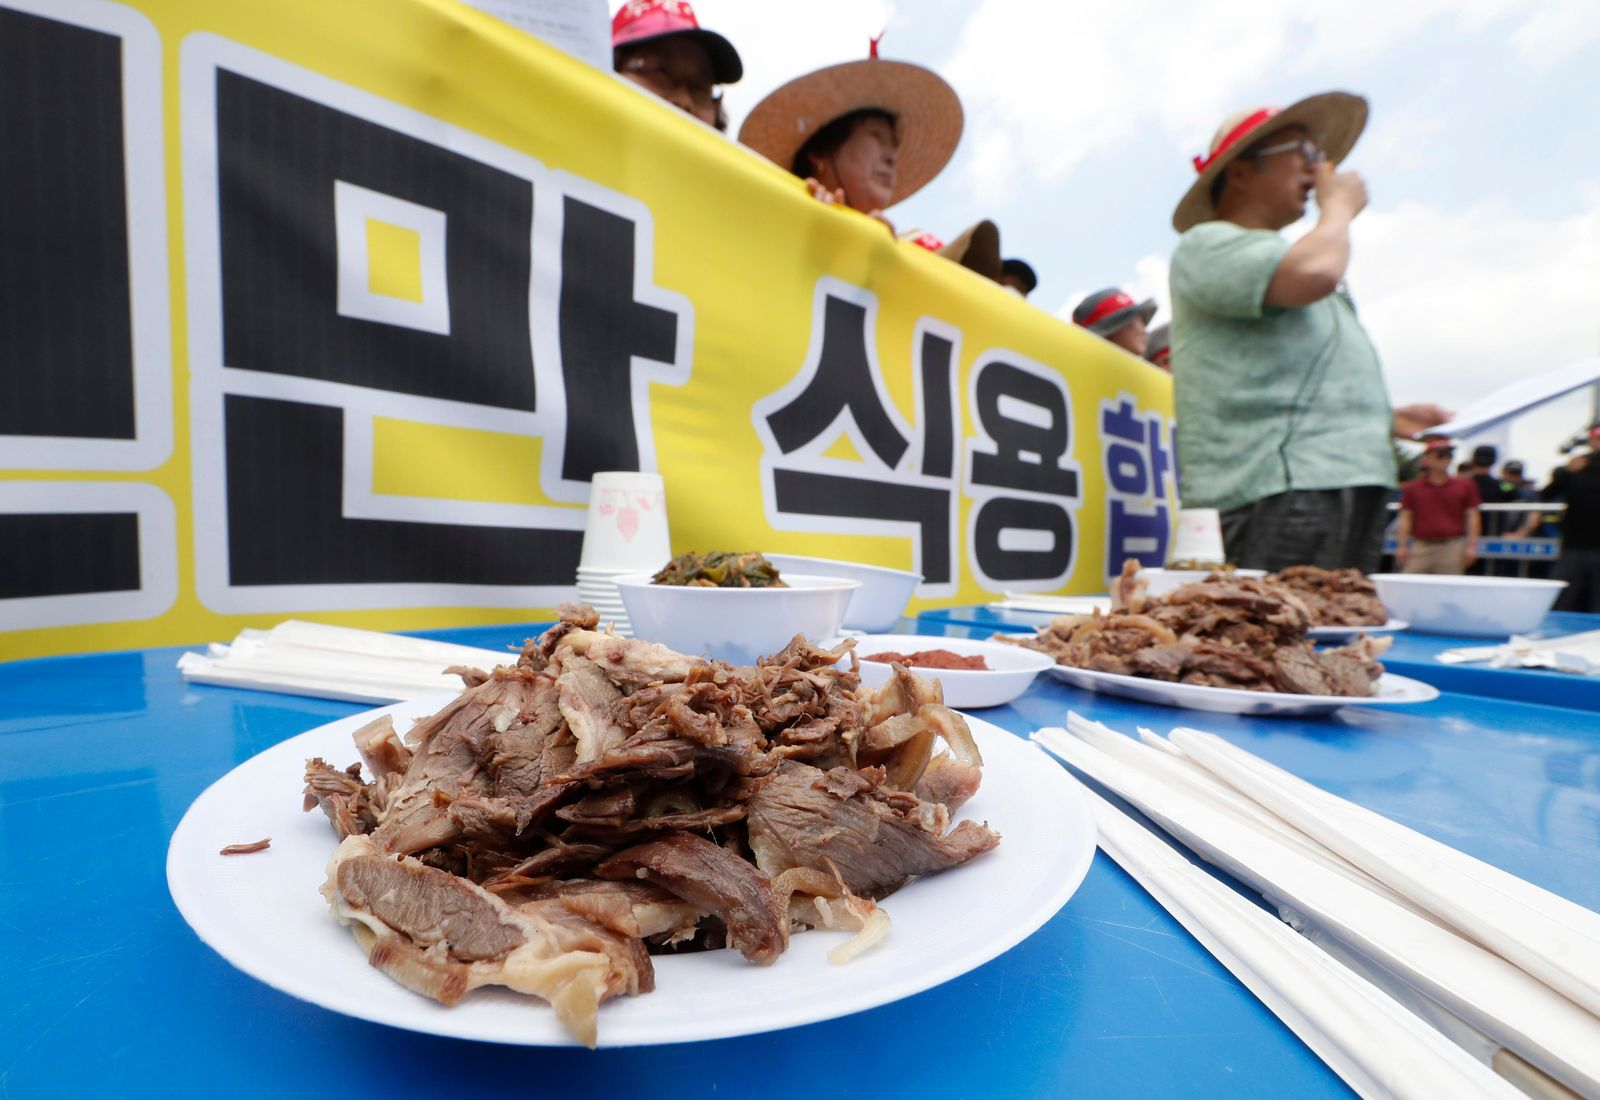 Members of the Korean Dog Meat Association stage a rally to support eating dog meat in front of the National Assembly in Seoul, South Korea, Friday, July 12, 2019. July 12 is the day South Koreans eat healthy foods such as dog meat in the belief it would help them survive heat during summer. (AP Photo/Ahn Young-joon)